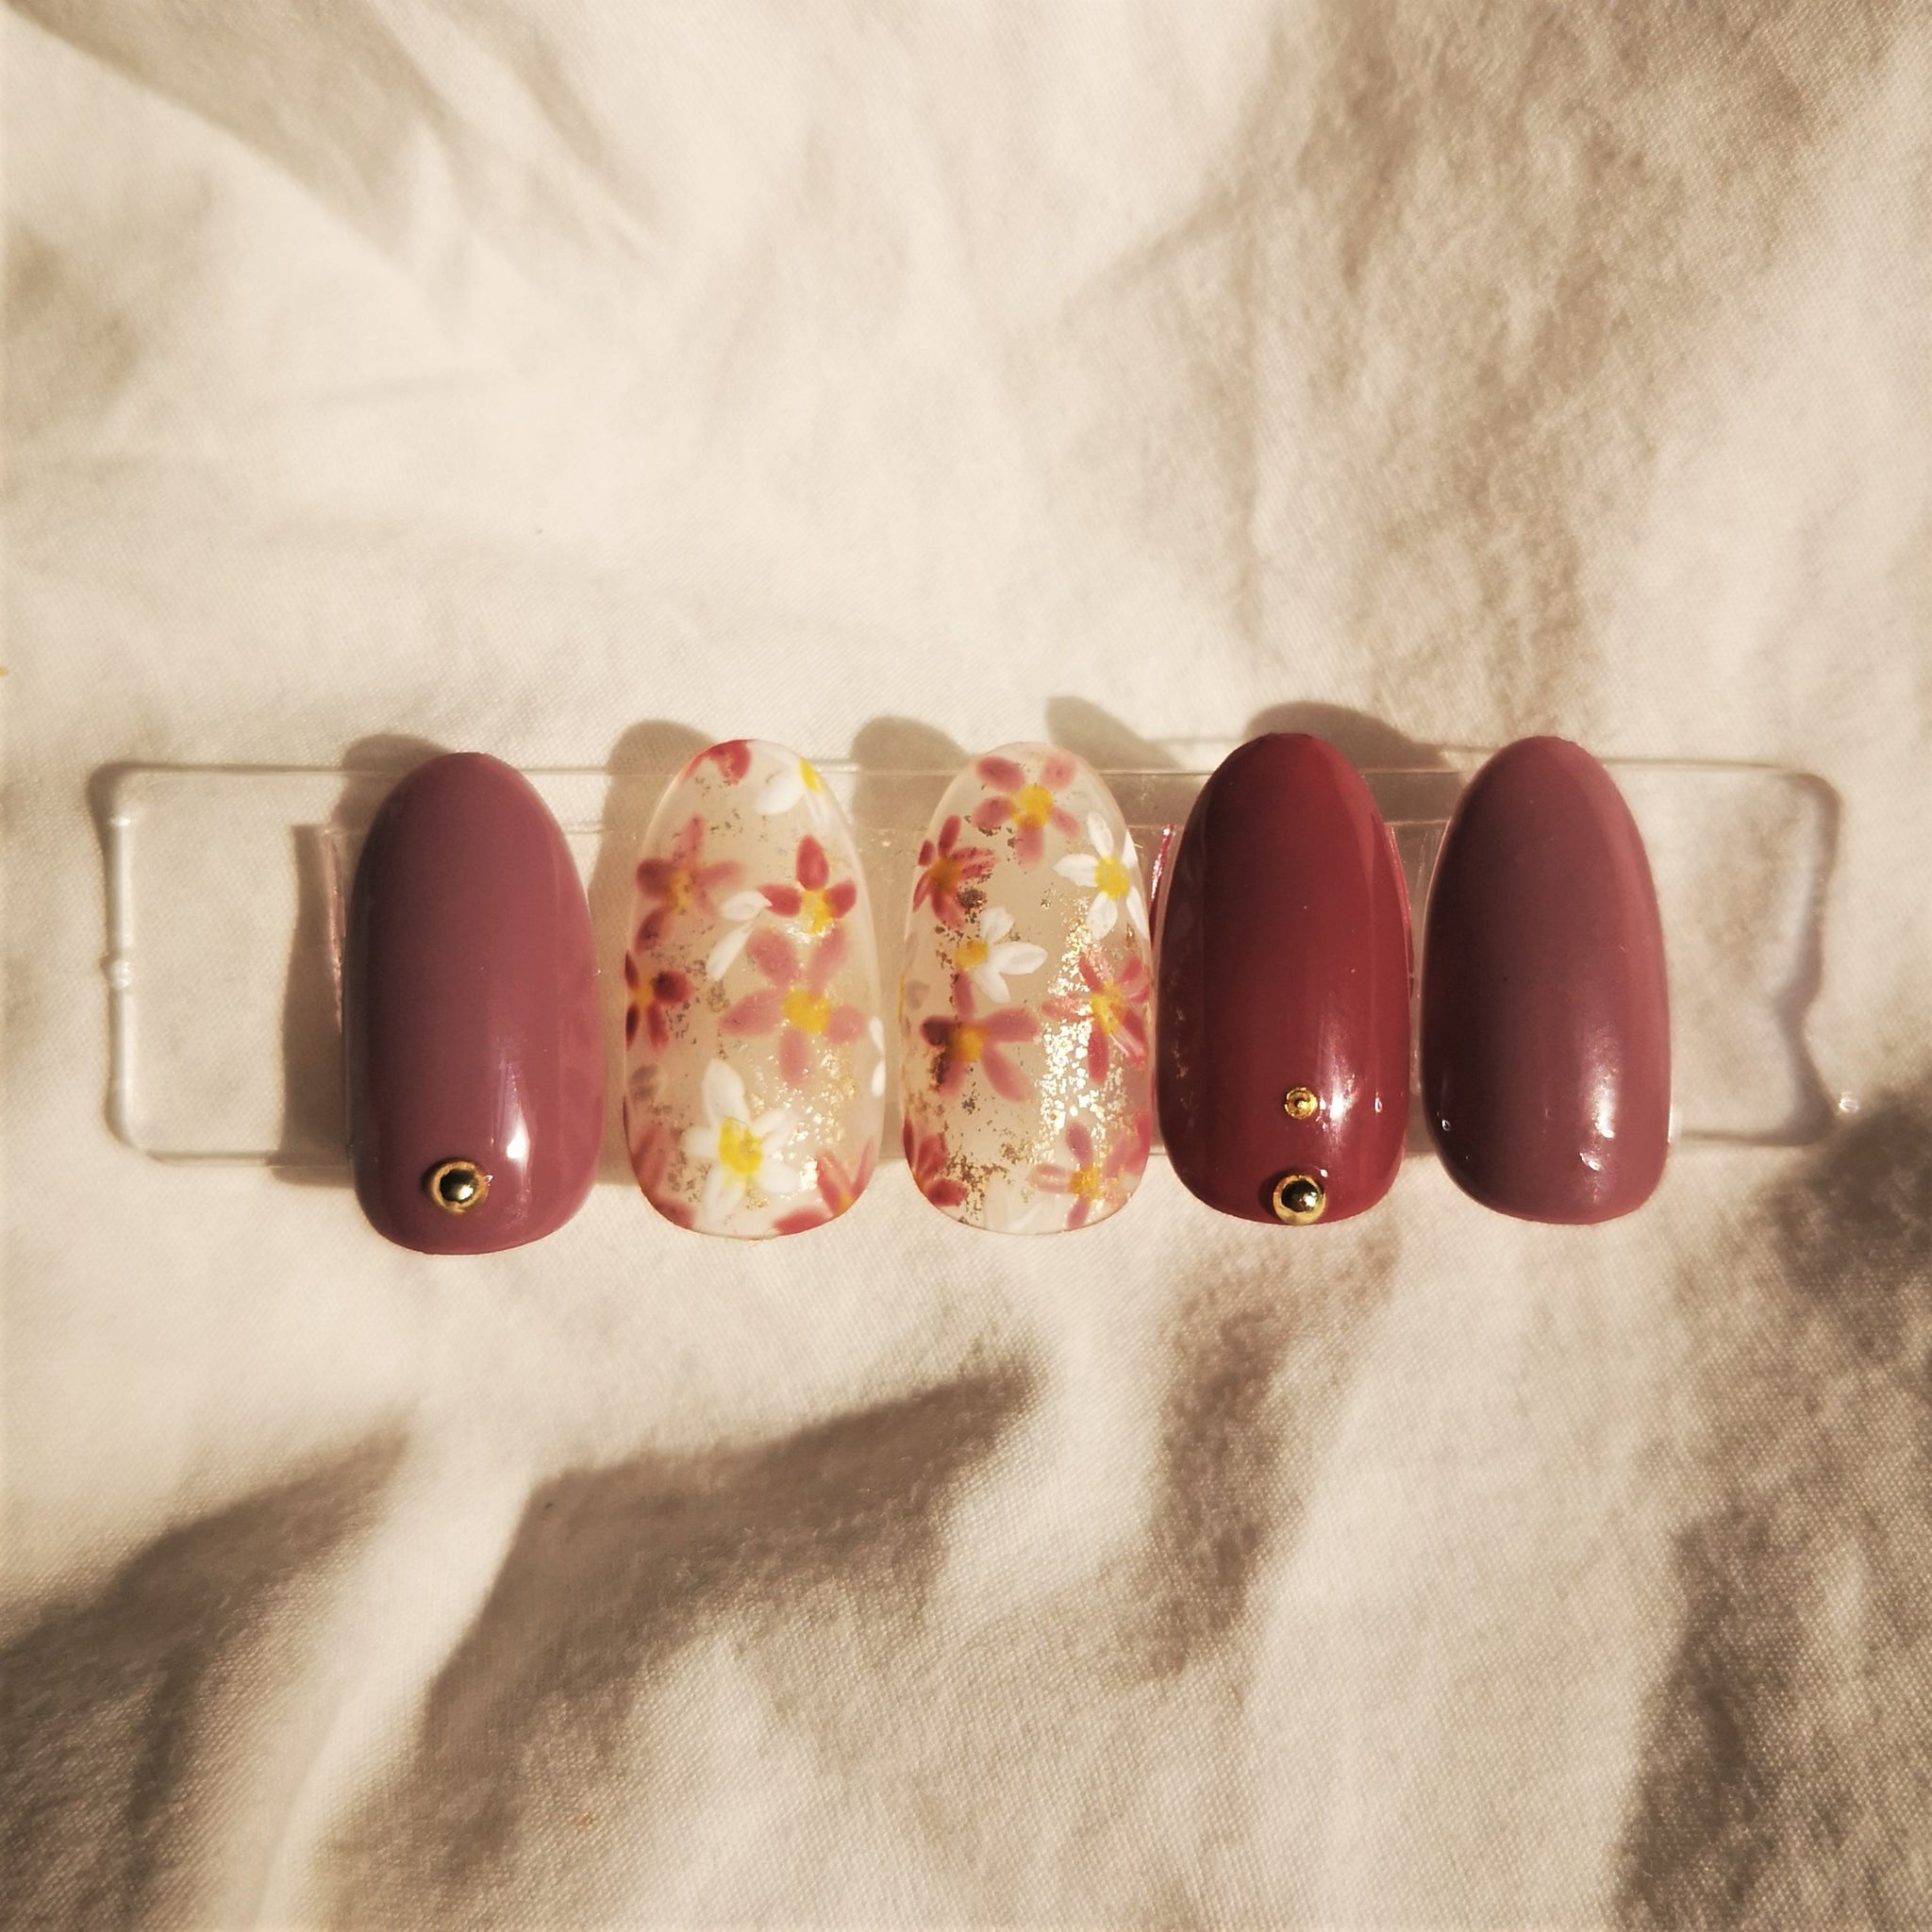 HANDMADE - FLORAL DESIGN WITH BEAUTIFUL CRIMSON RED PRESS-ON NAIL SET